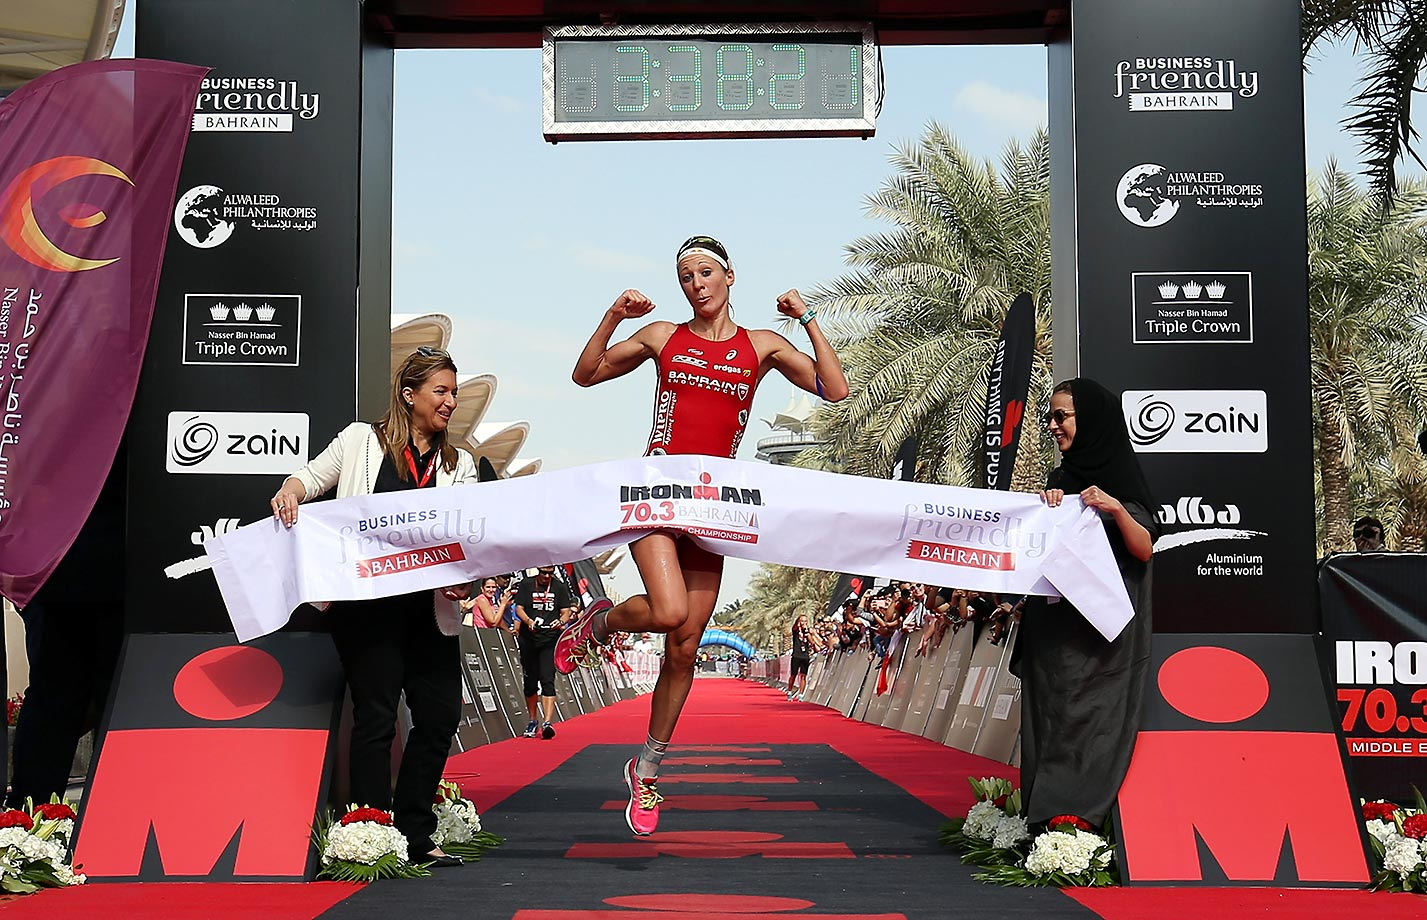 Daniela Ryf of Switzerland celebrates winning the Triple Crown (and $1 million) at the Ironman Bahrain.